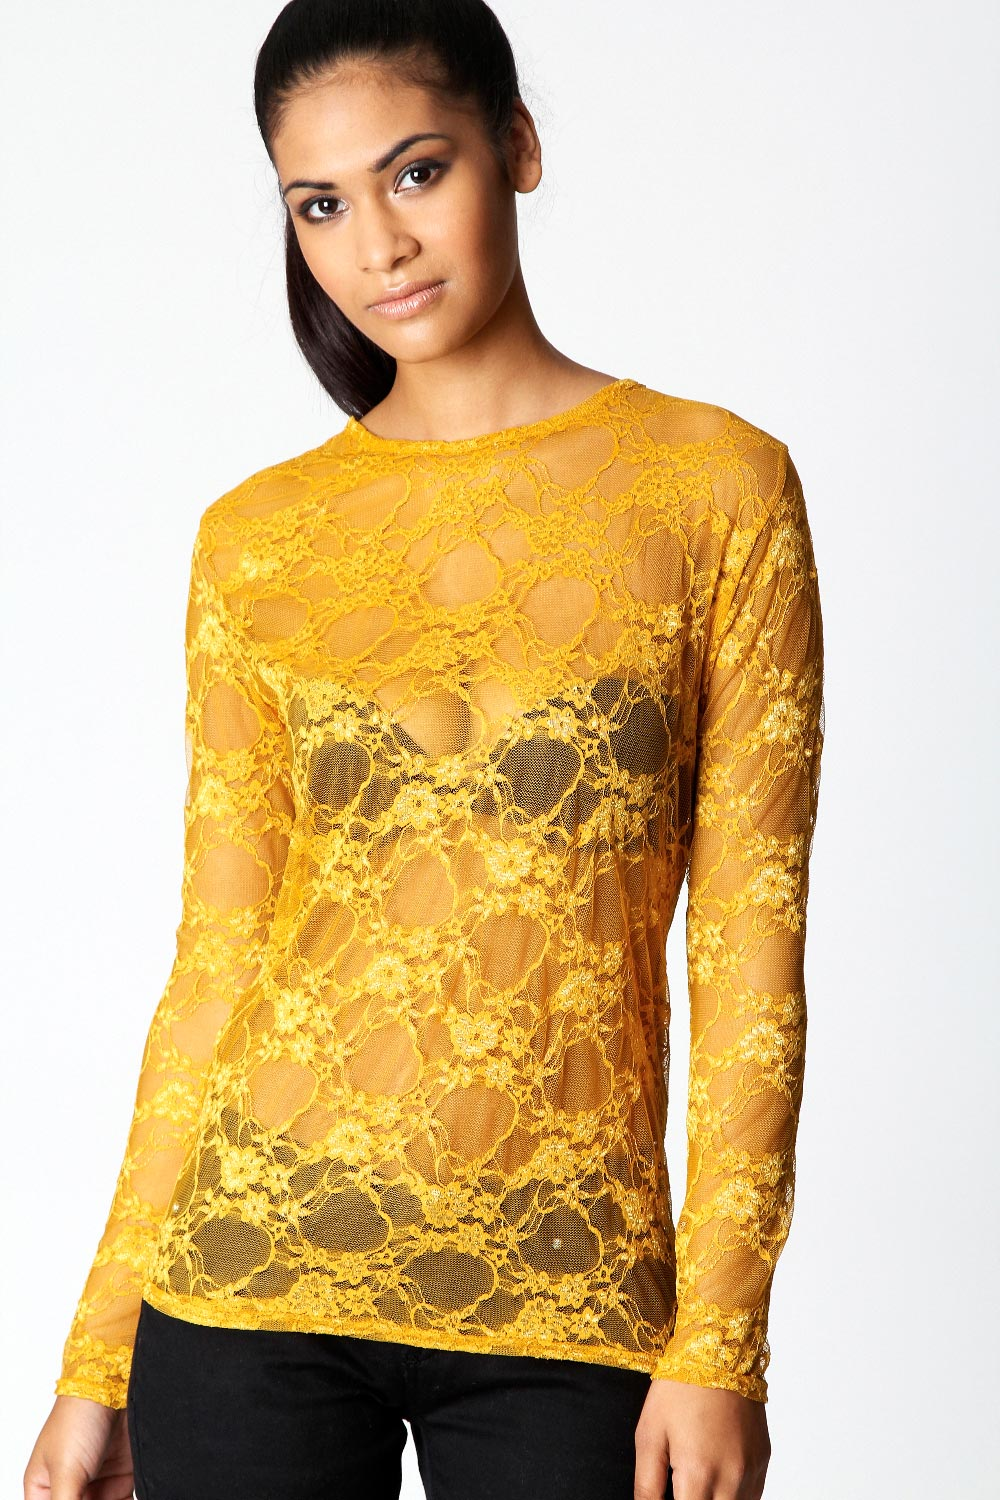 Boohoo-Joelle-Long-Sleeve-Lace-Blouse-in-Mustard-BNWT